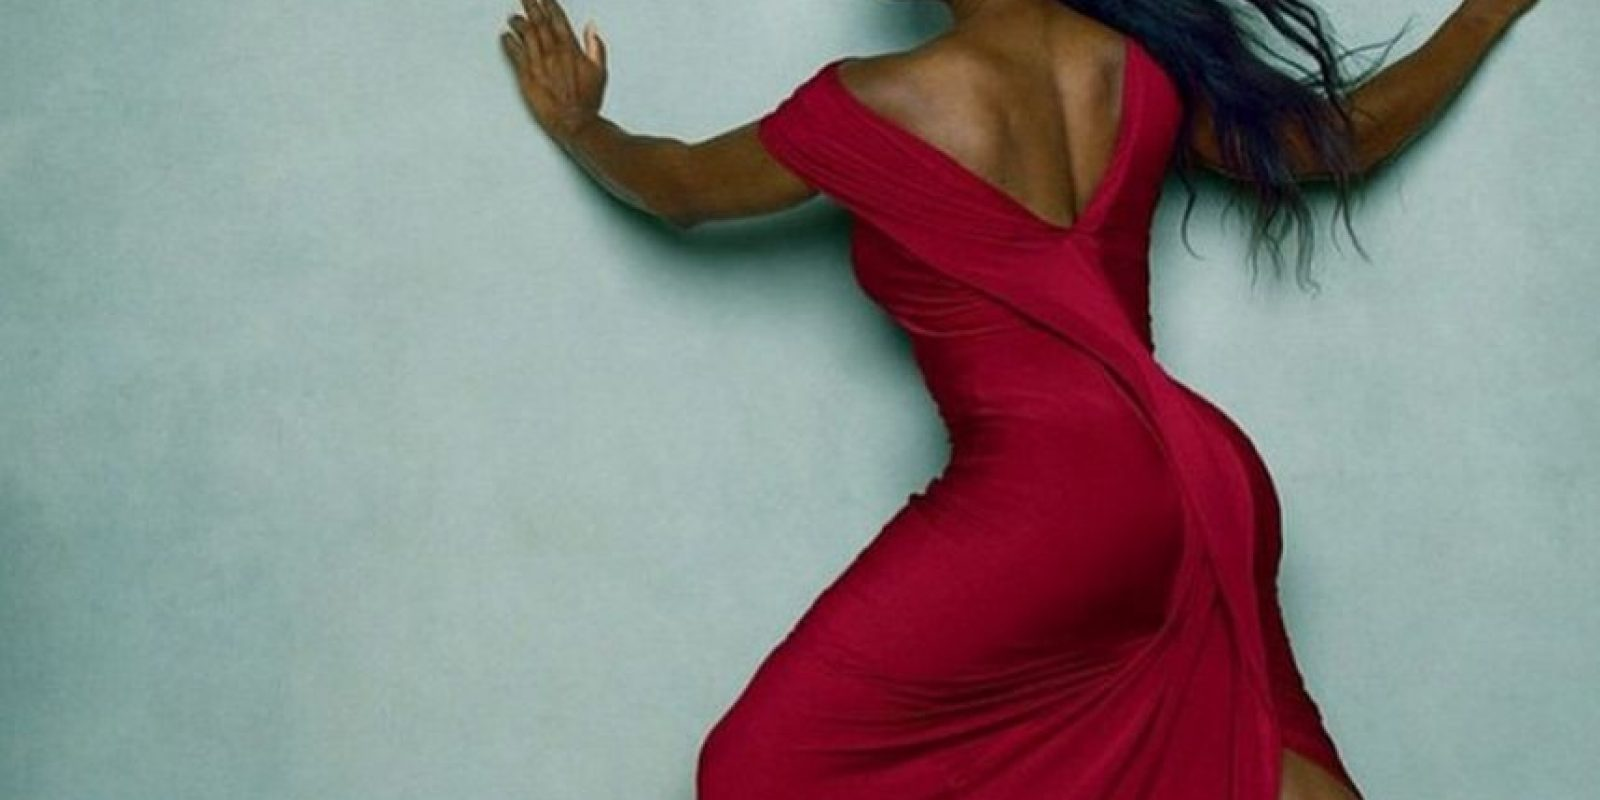 Serena Williams Foto: Instagram: @serenawilliams